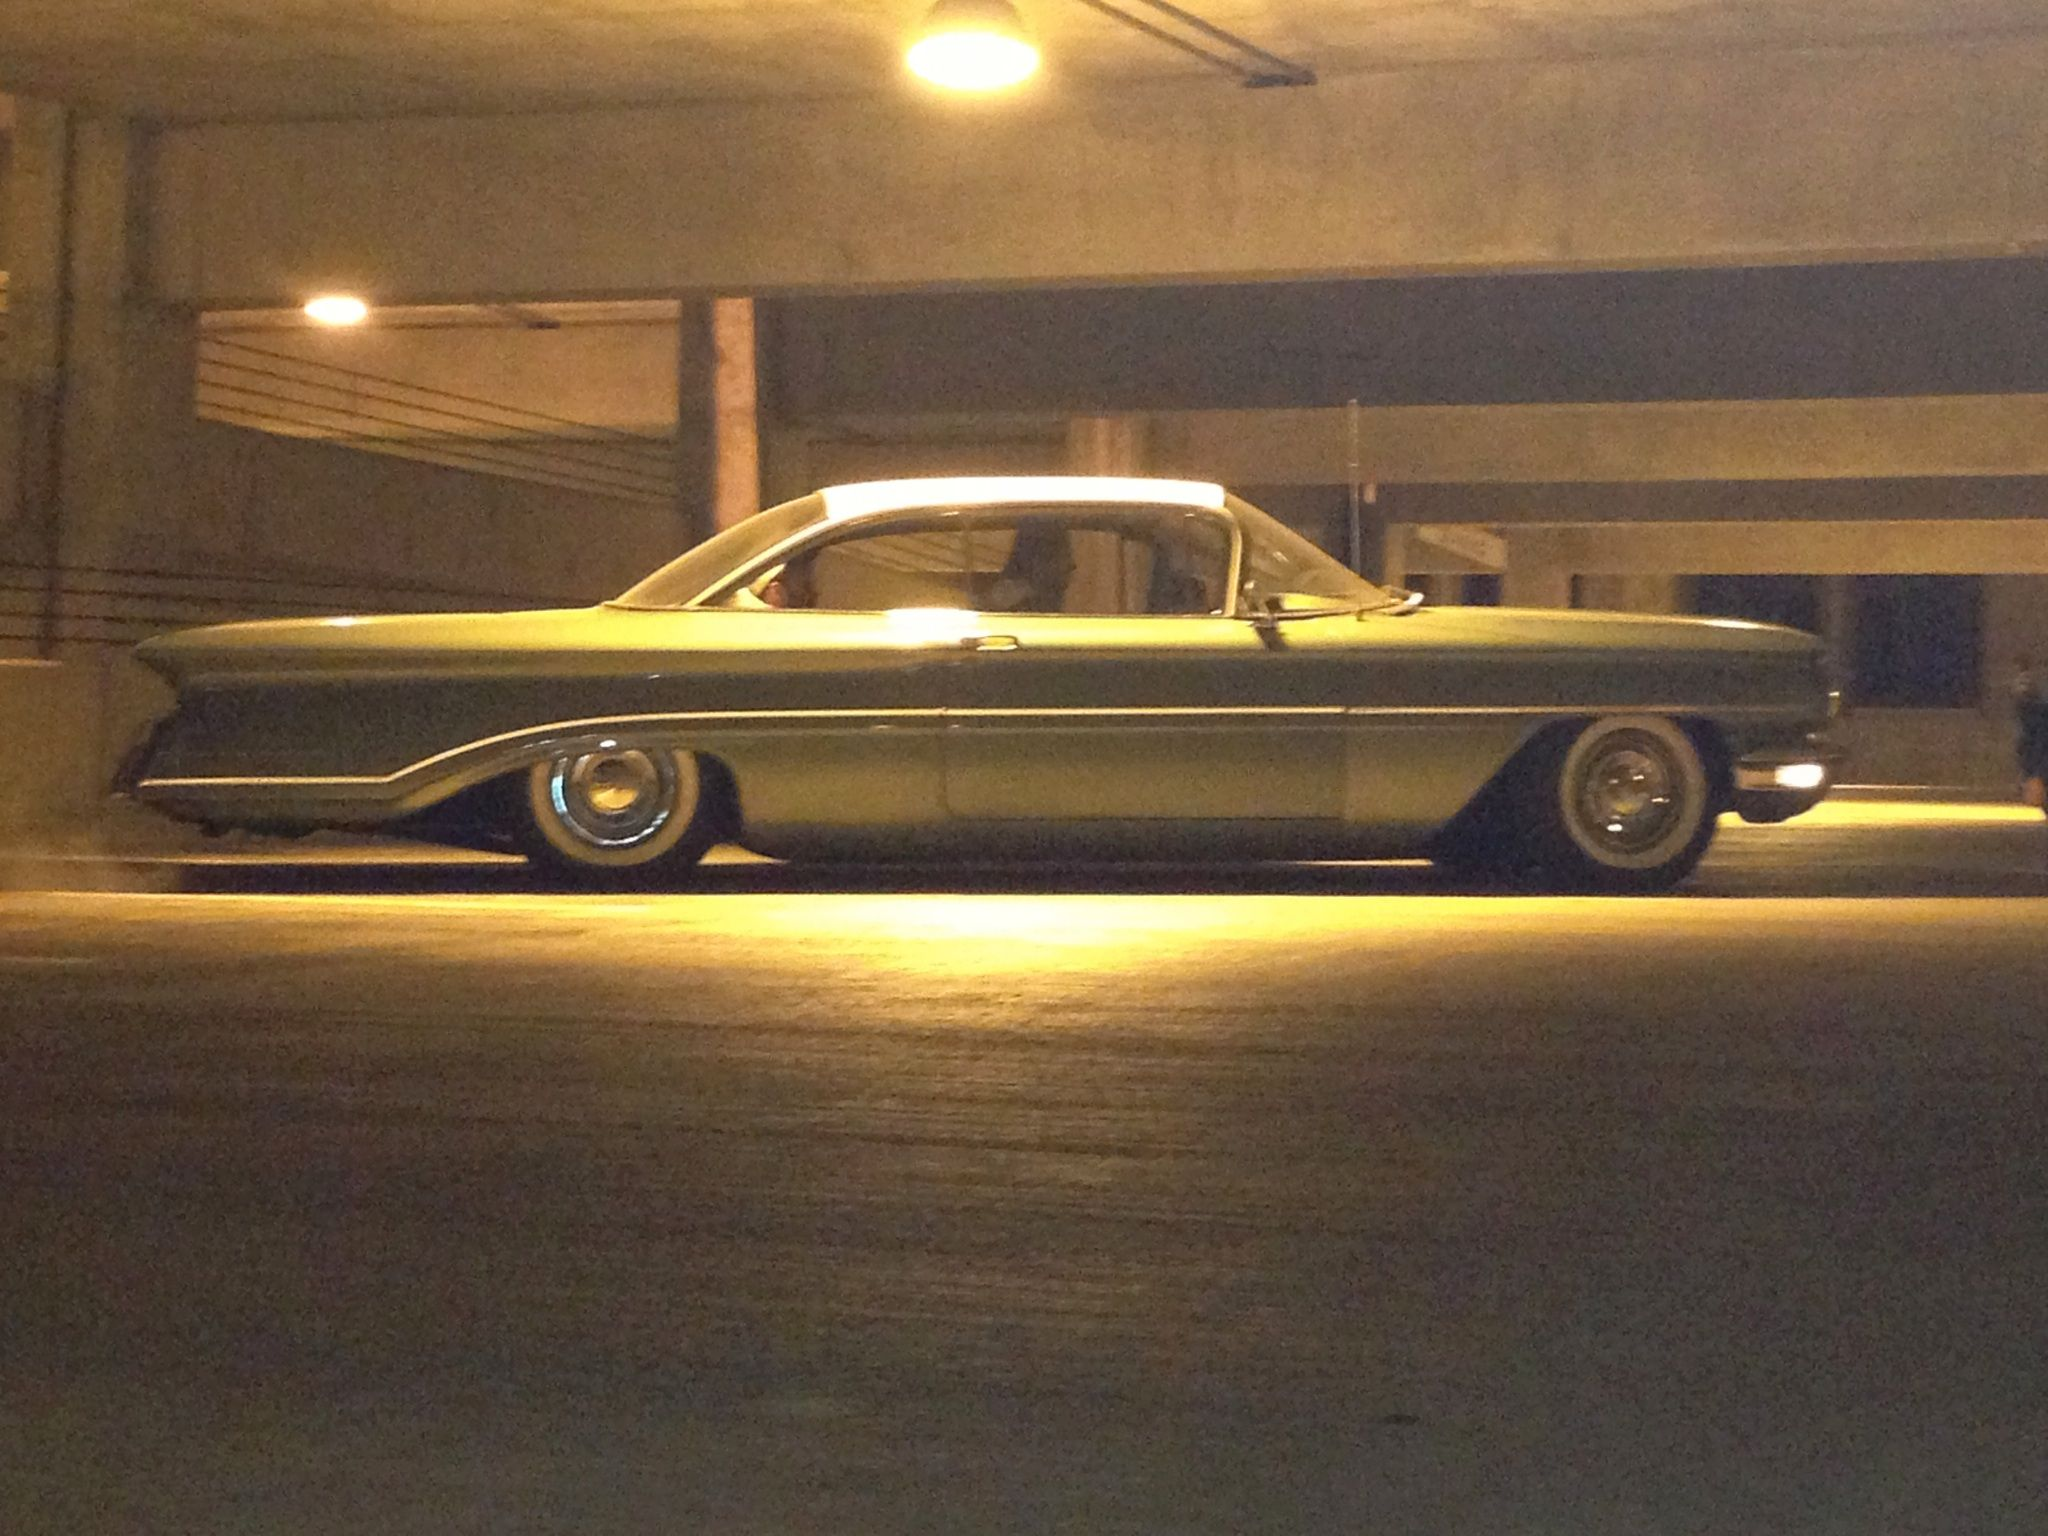 1956 chevy bel air dynomite classic muscle car for sale in - I Miss My 60 Olds Bubbletop Starlite Customs 1960 Oldsmobile Customs Pinterest Cars